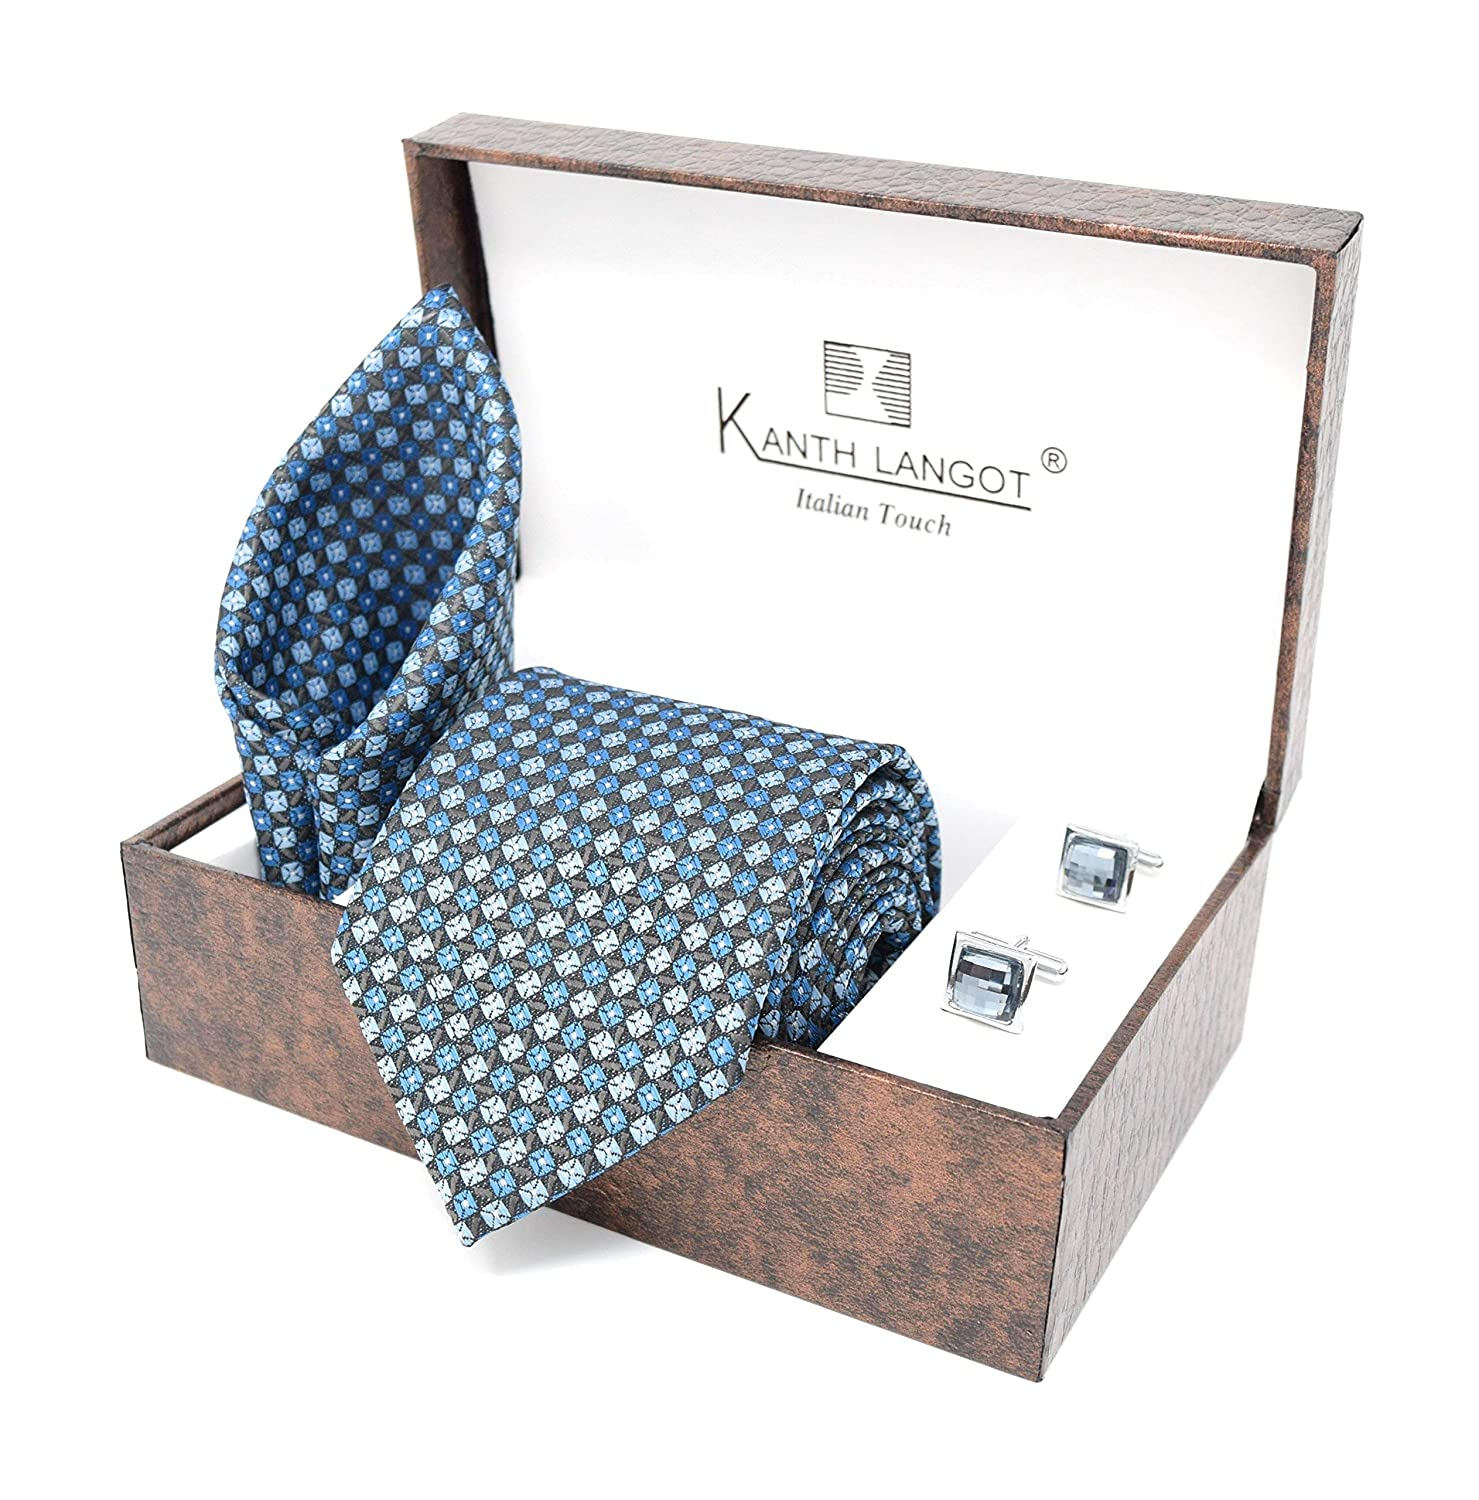 Kanthlangot Jacquard Blue Seld Design Tie Pocket Square And Crystal Cufflinks Set